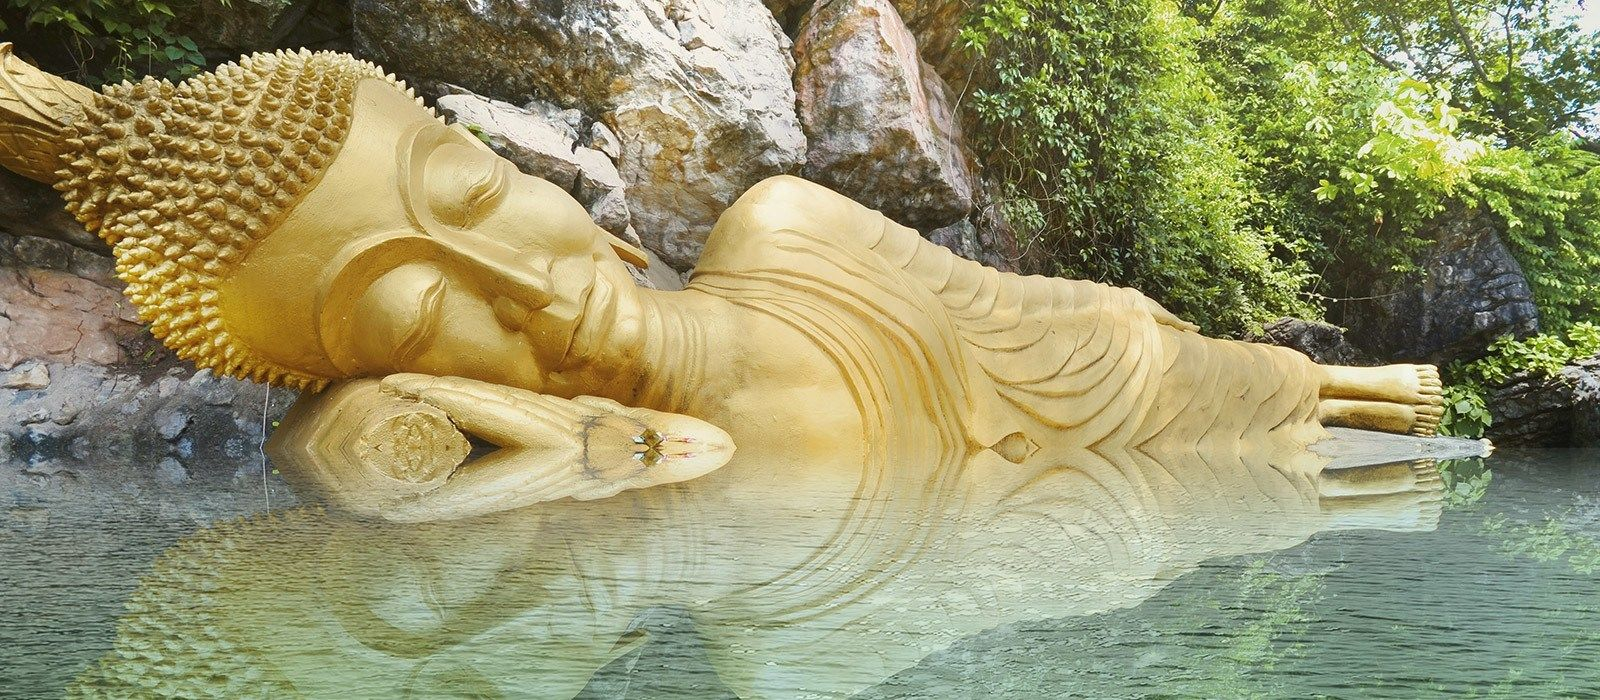 Live Laos: From Monks to Mekong Tour Trip 5